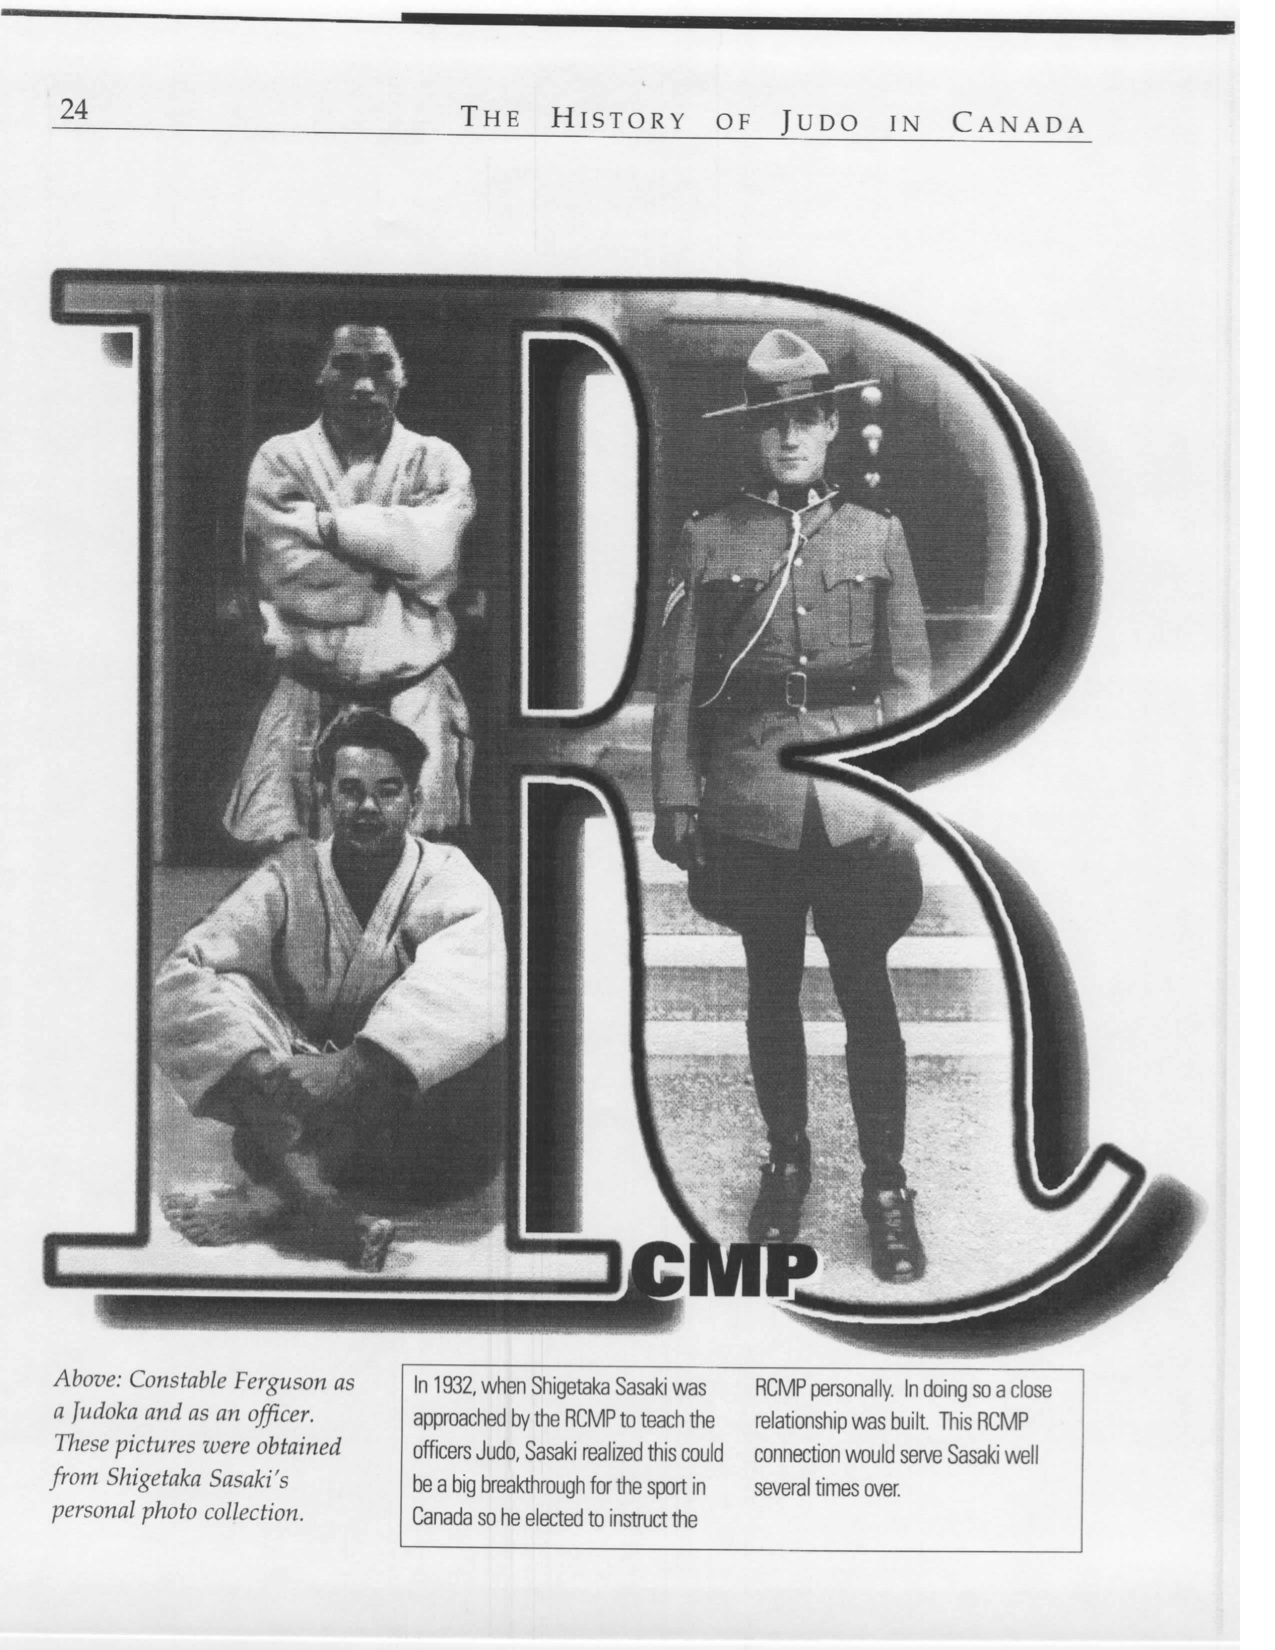 Early Years with Judo and the RCMP